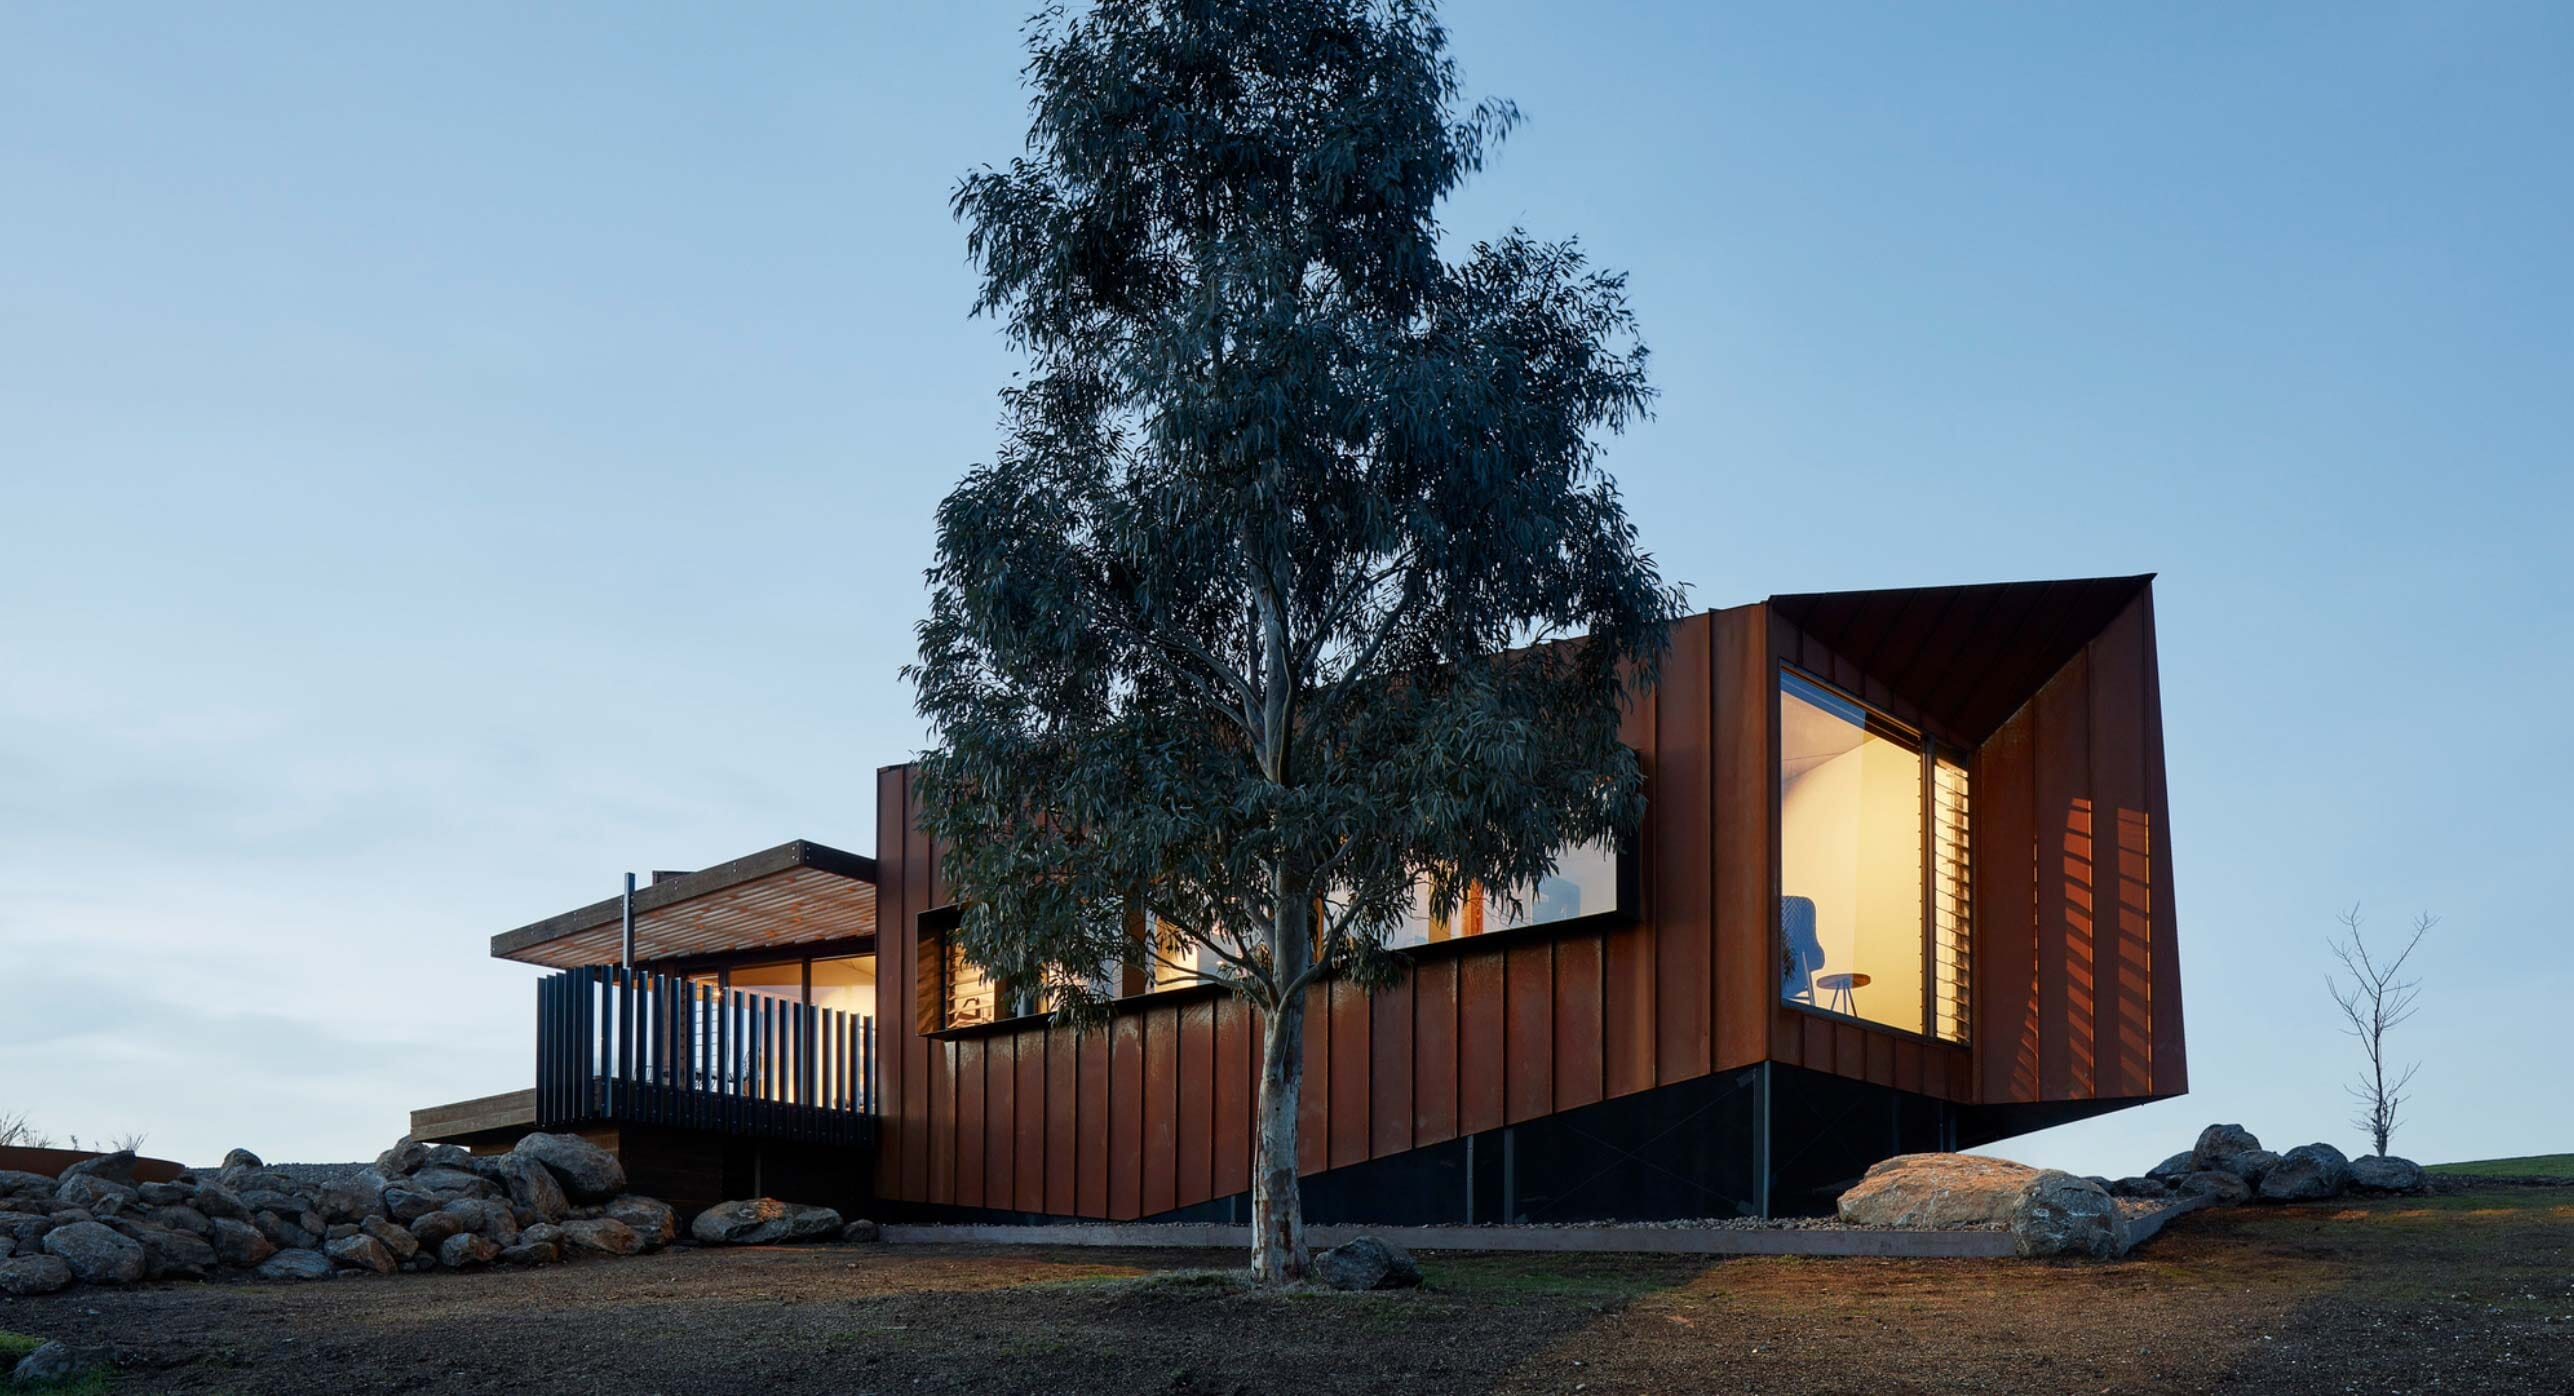 This Award-Winning Minimalist Home is Small Yet Spectacular